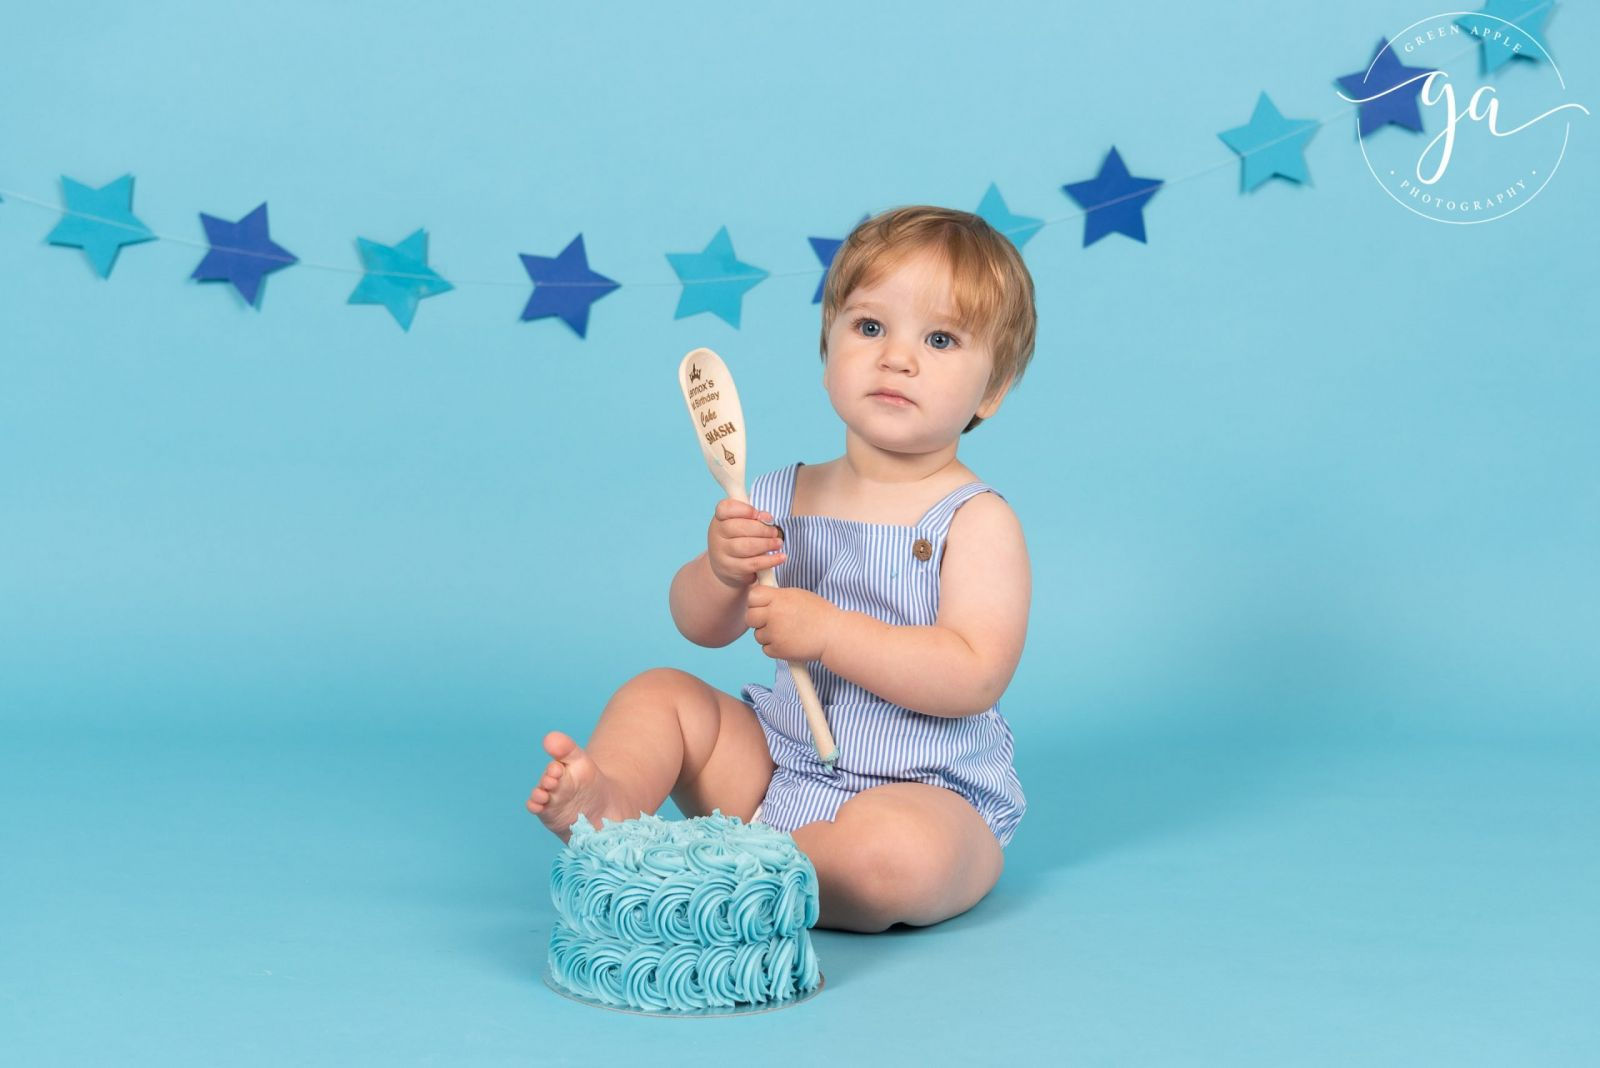 one year old boy on blue background holding wooden spoon